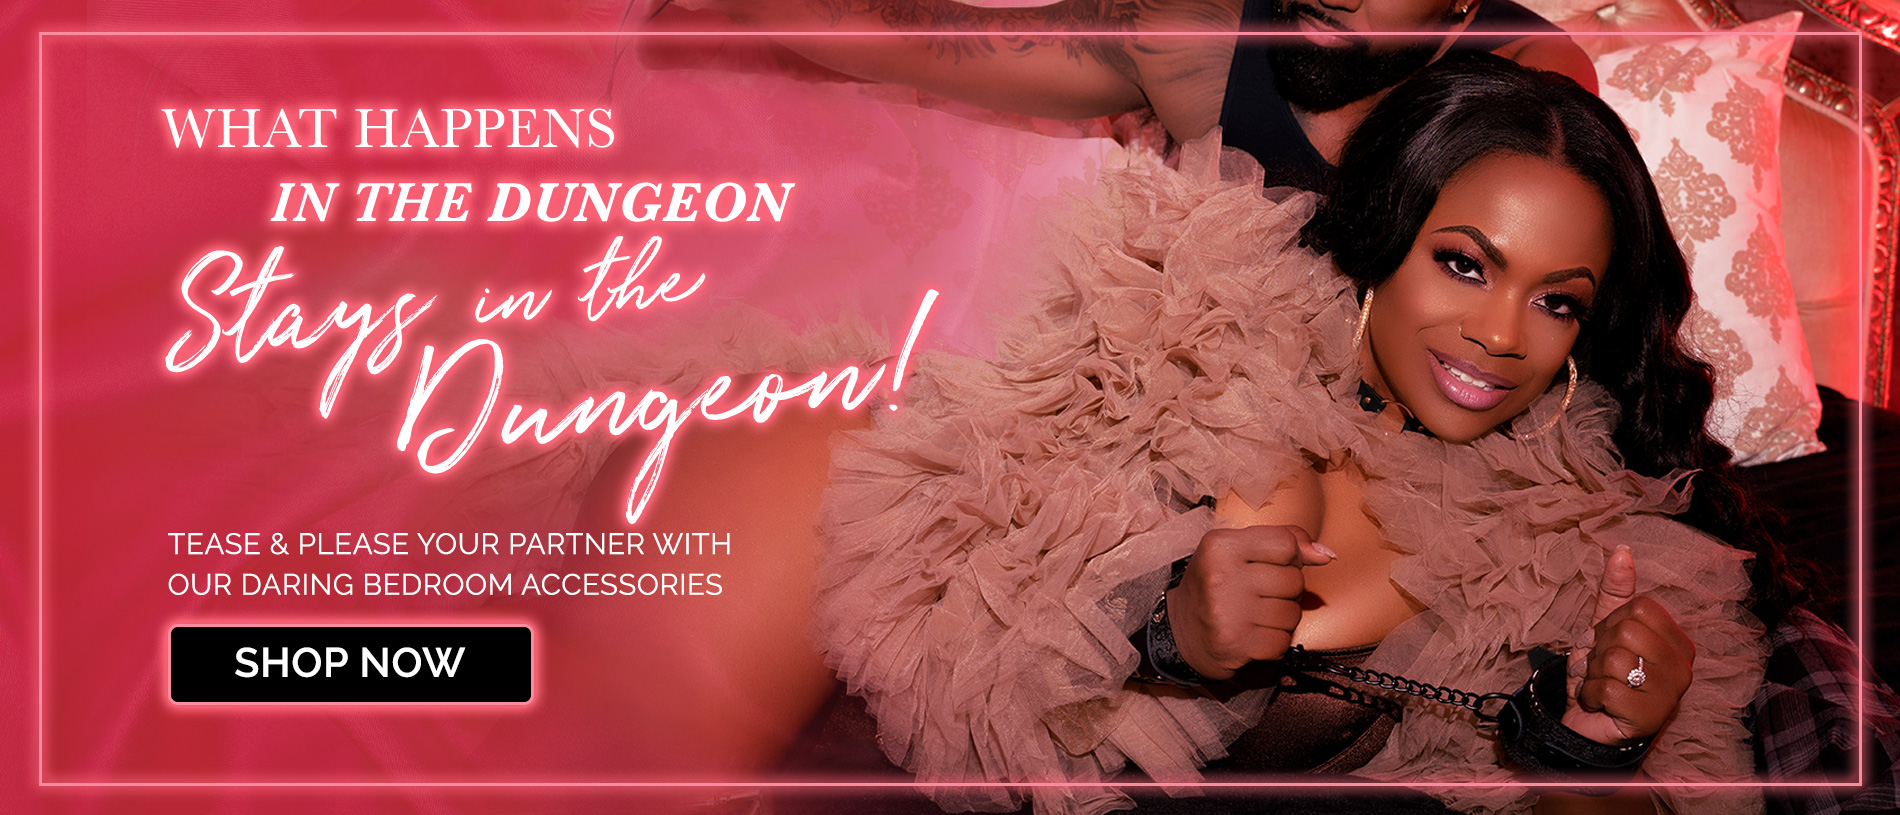 What Happens in the Dungeon stays in the Dungeon! Shop Now to tease and please your partner